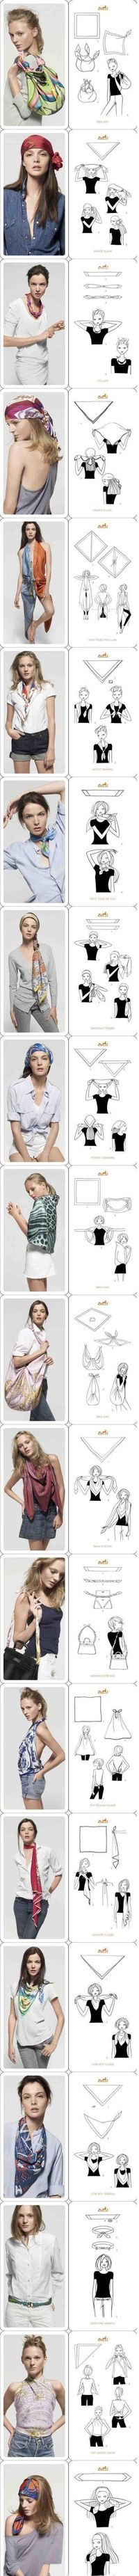 Different ways to use scarf!